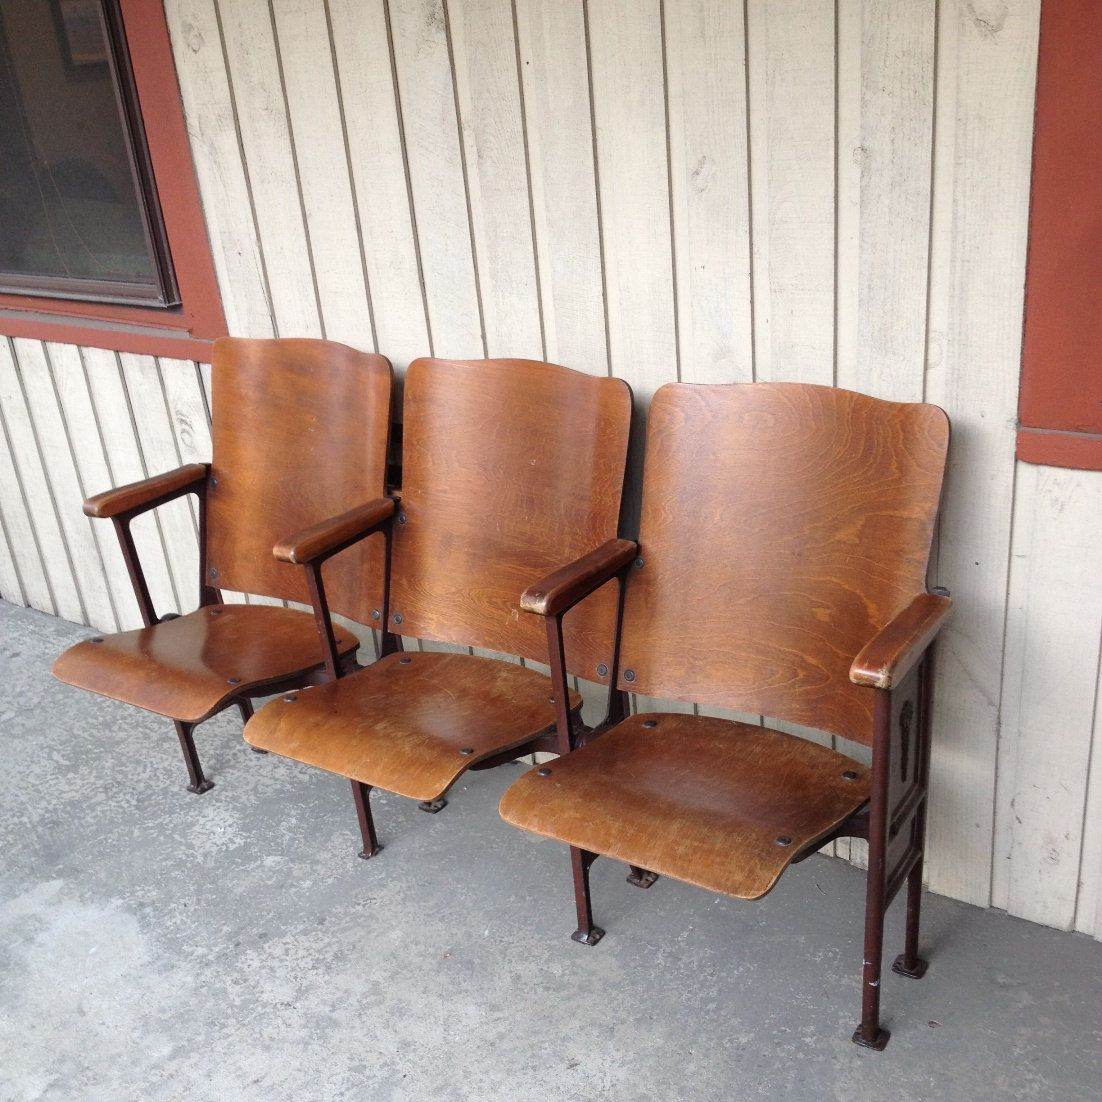 Antique Theatre Seating Or Church Seats Connected By Thedirtyloft